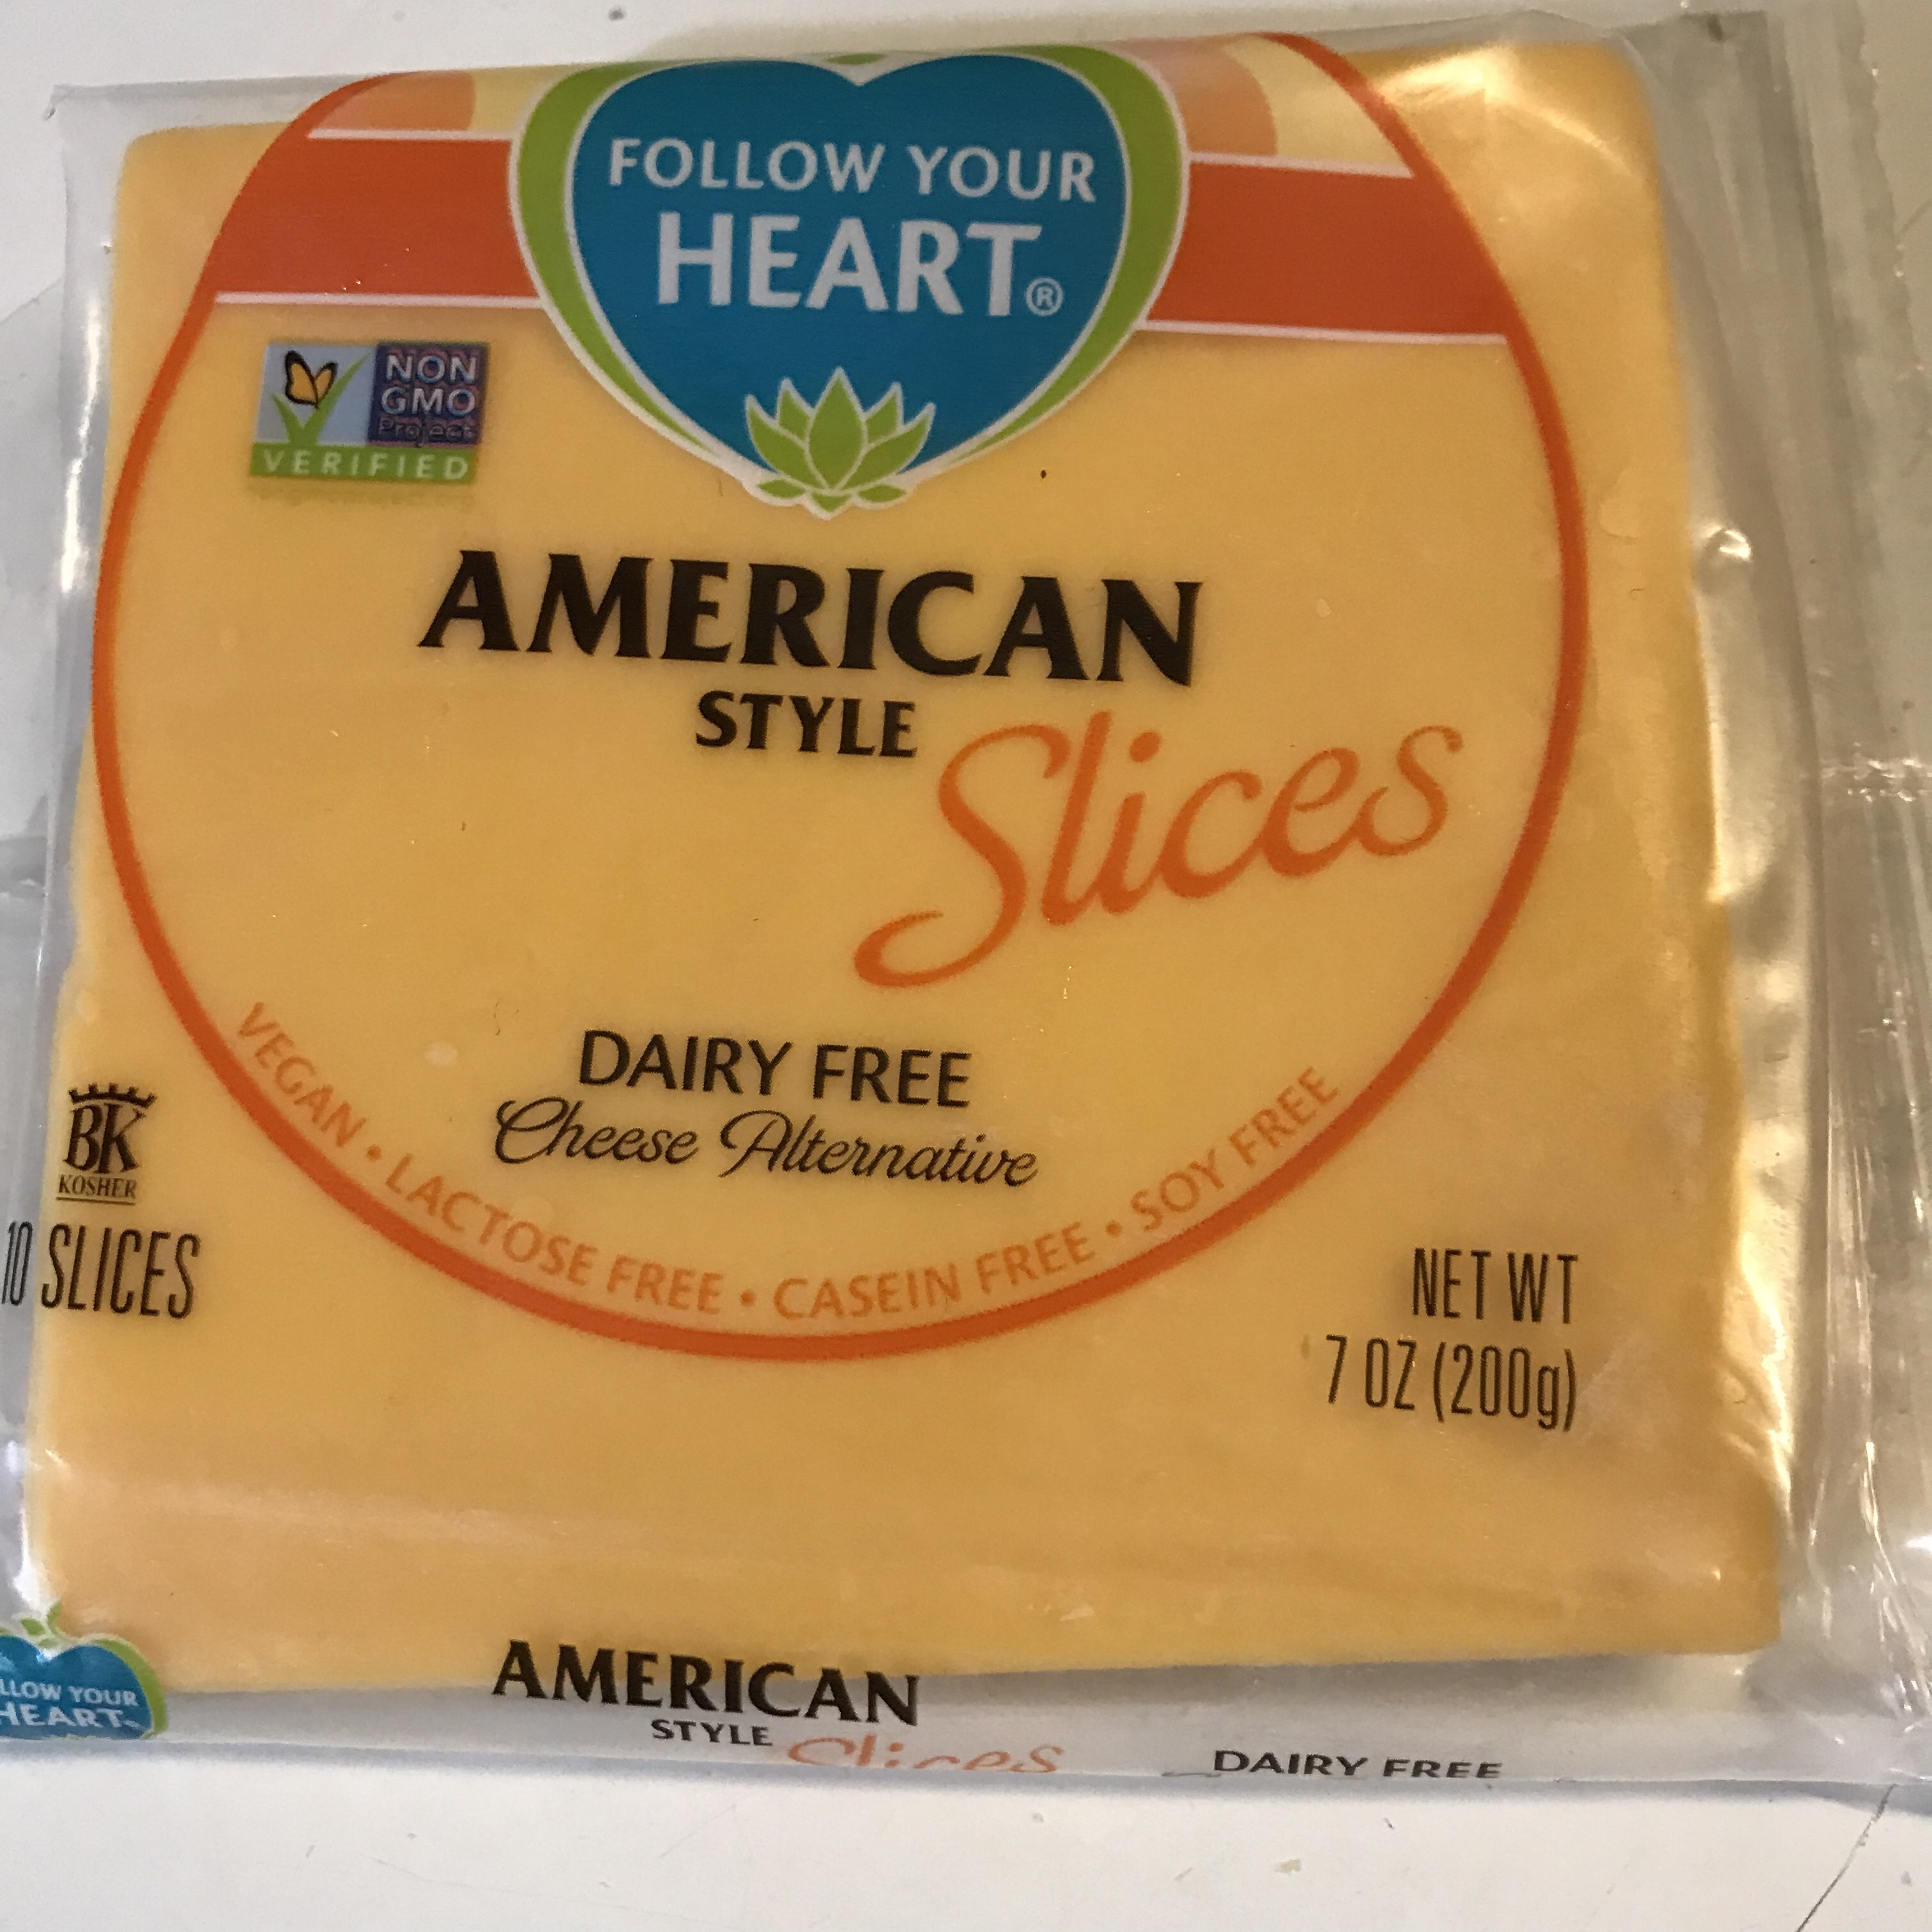 Follow Your Heart American Cheese slices